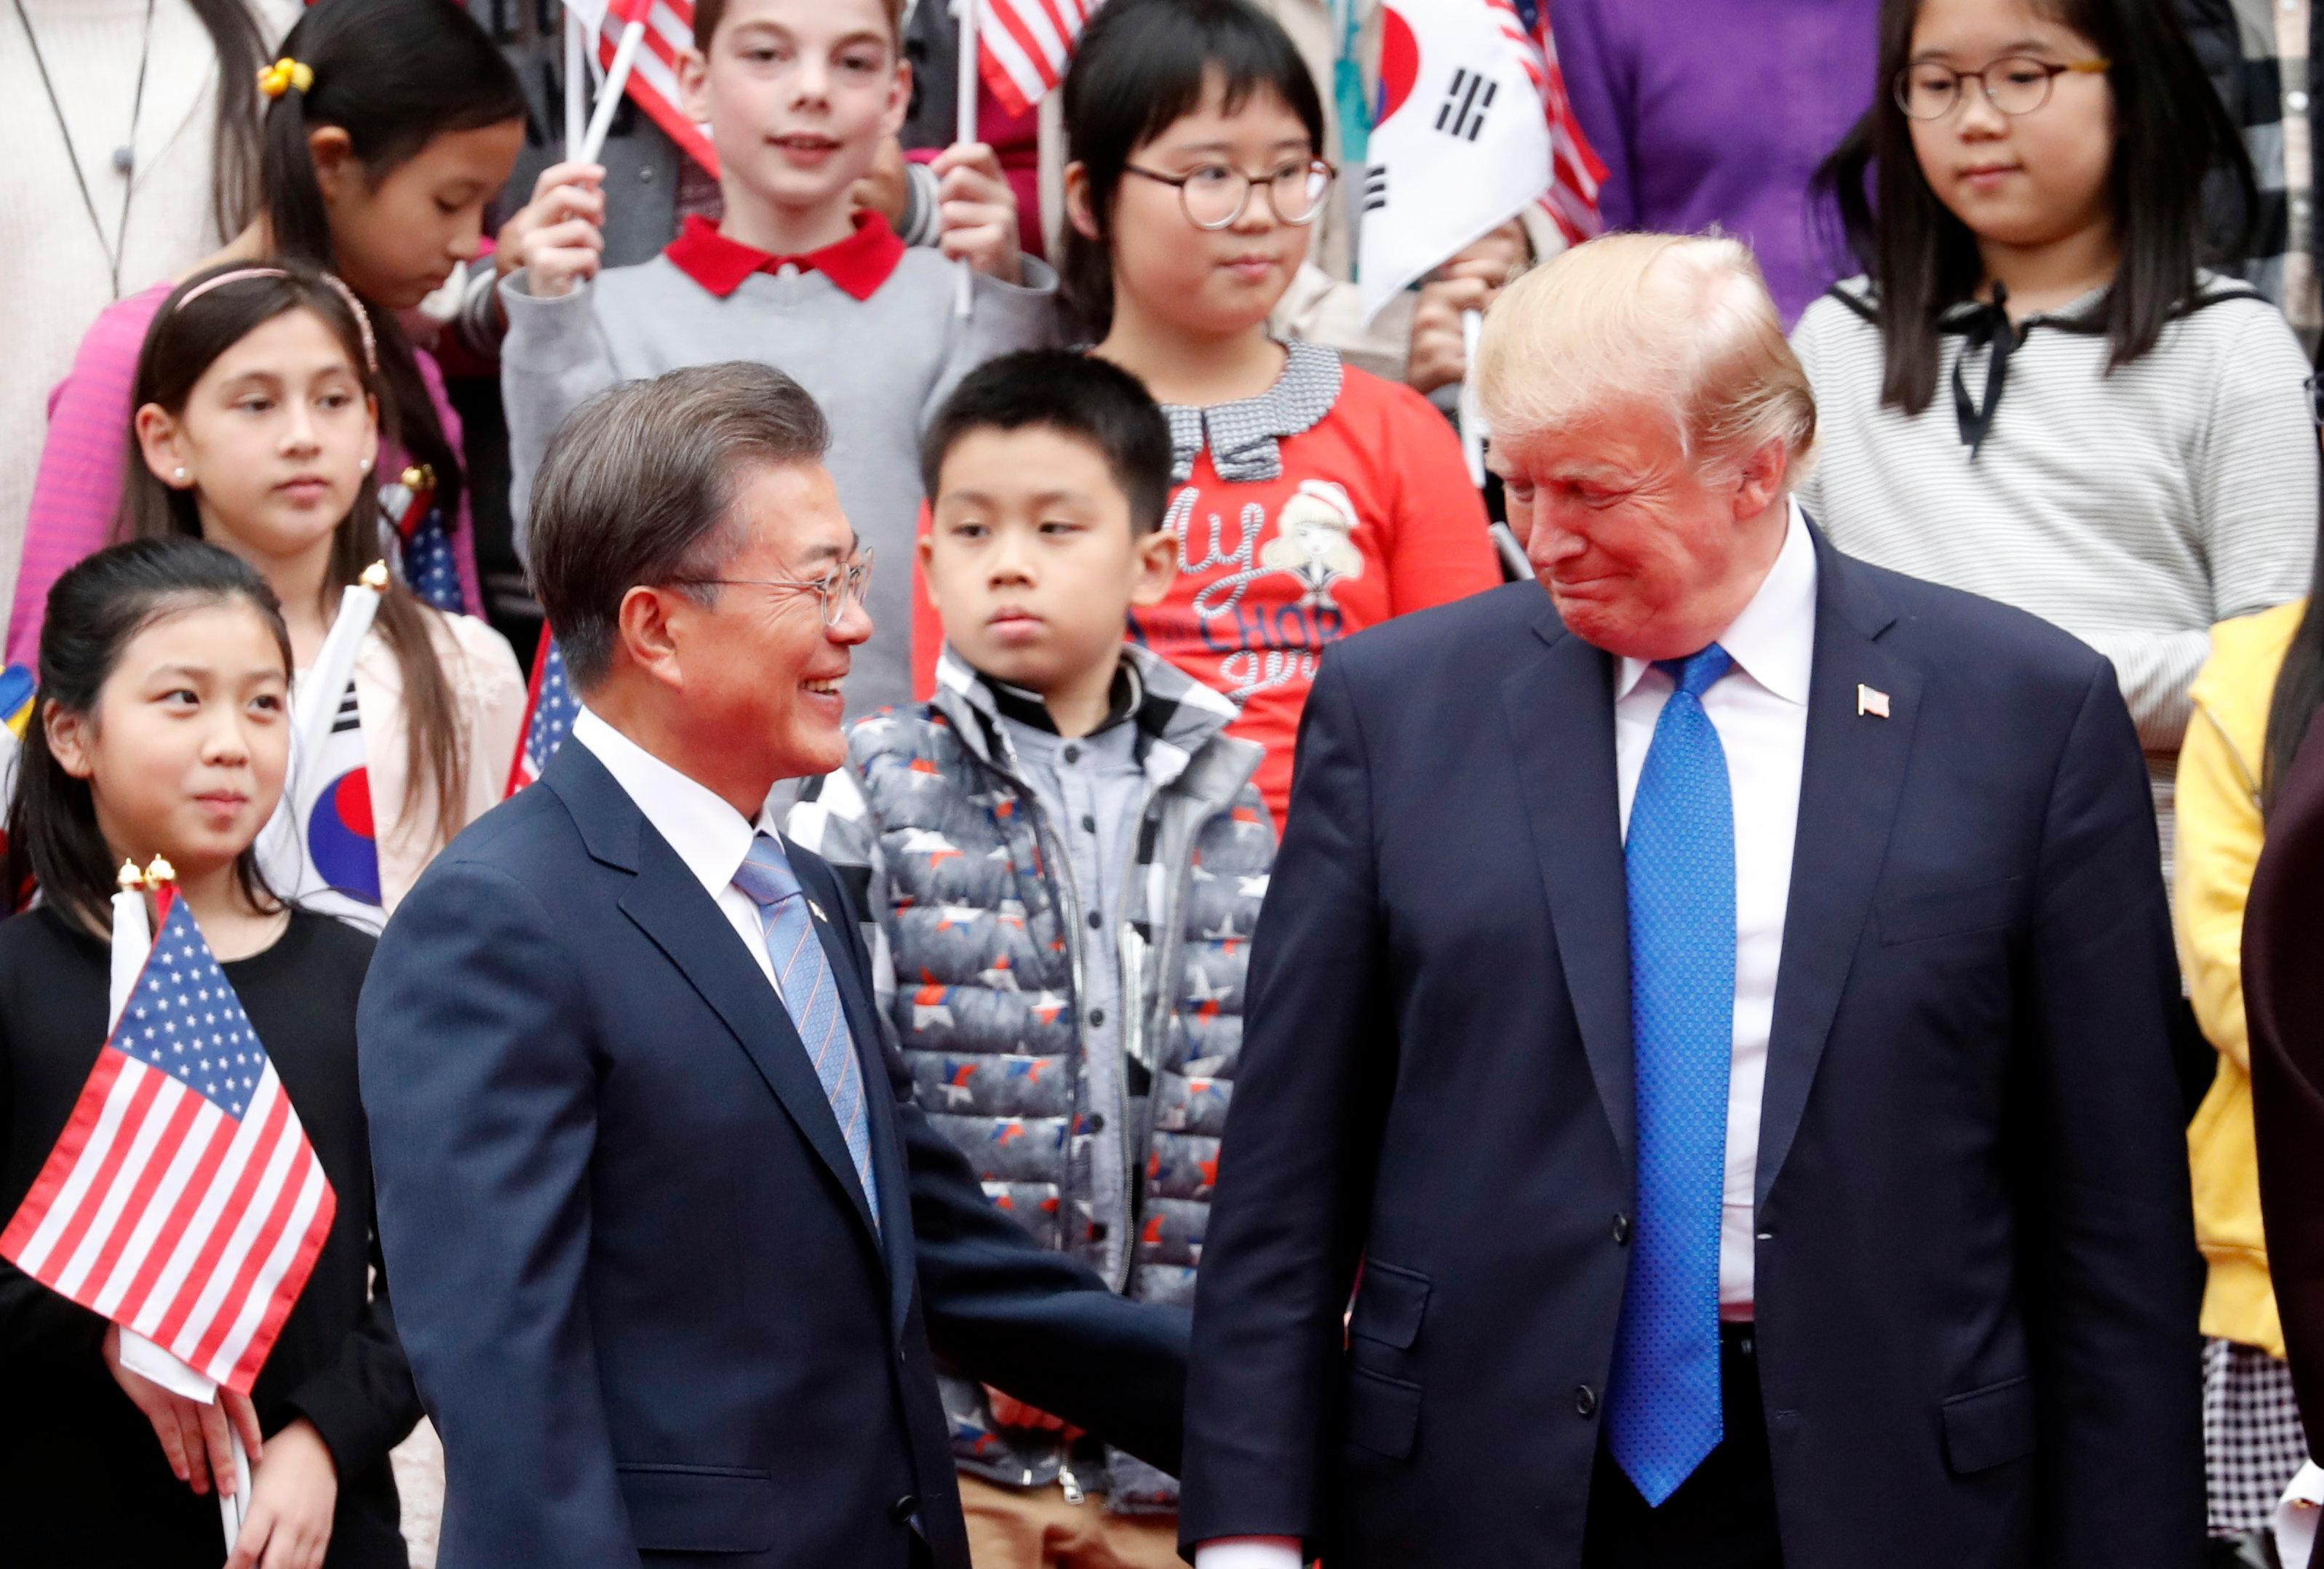 U.S. President Donald Trump, right, and South Korea's President Moon Jae-in attend a welcoming ceremony at the Presidential Blue House in Seoul Tuesday, Nov. 7, 2017. (Kim Hong-ji/Pool Photo via AP)